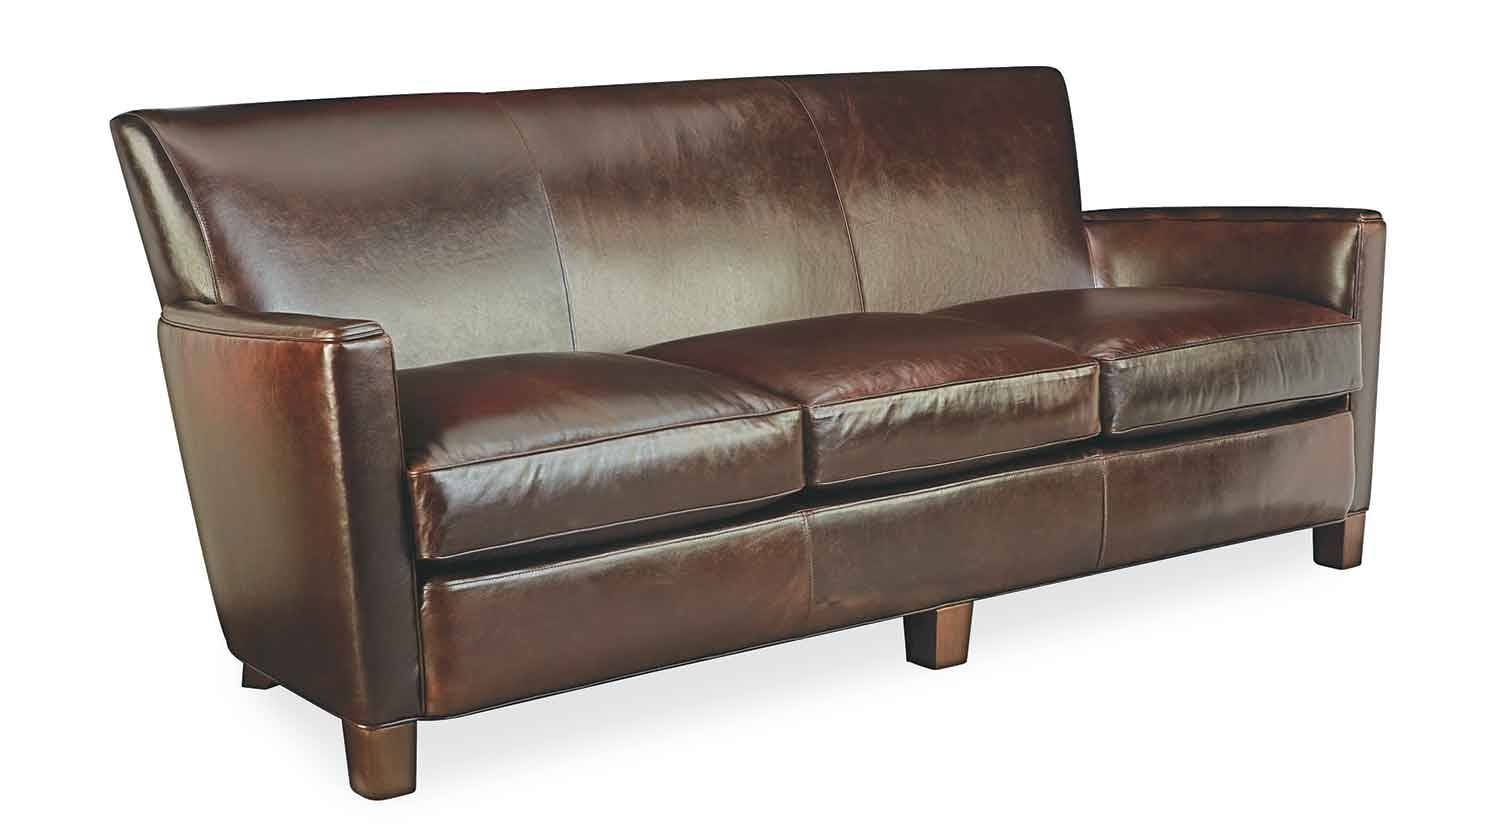 Circle Furniture - Trent Leather Sofa | Leather Sofas Ma | Circle in Camel Color Leather Sofas (Image 5 of 15)